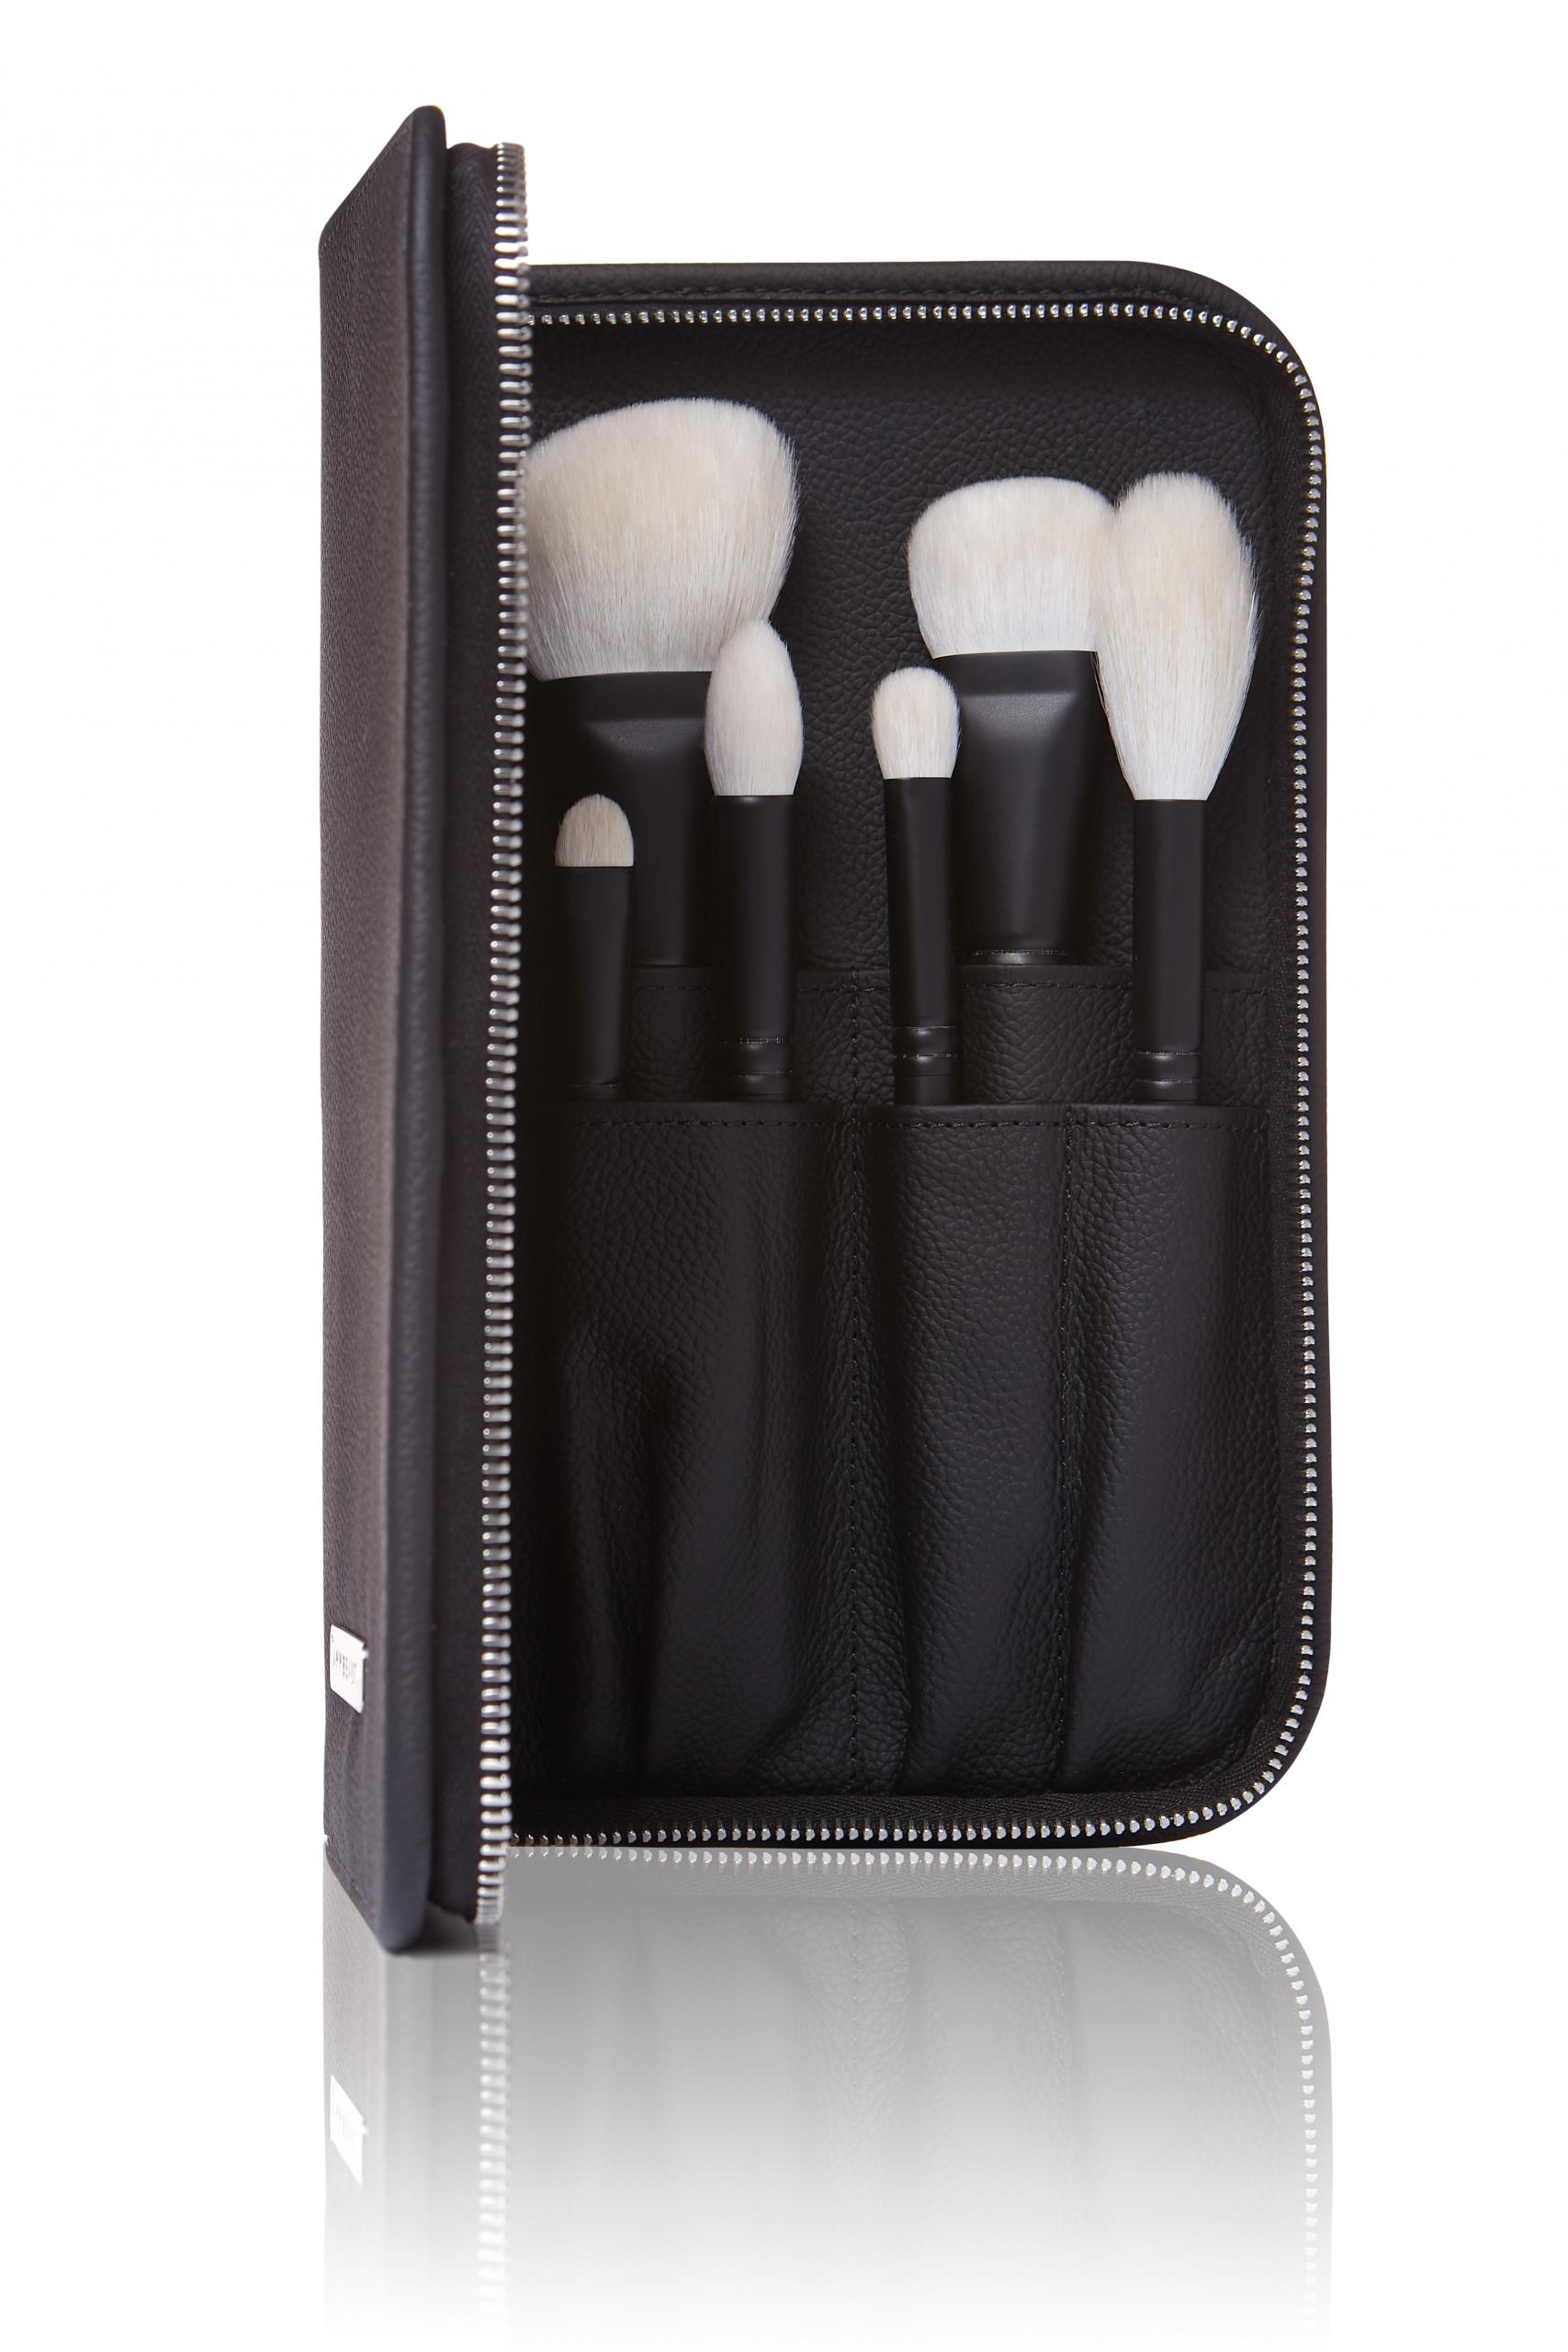 Leather brush case Annbeauty opened